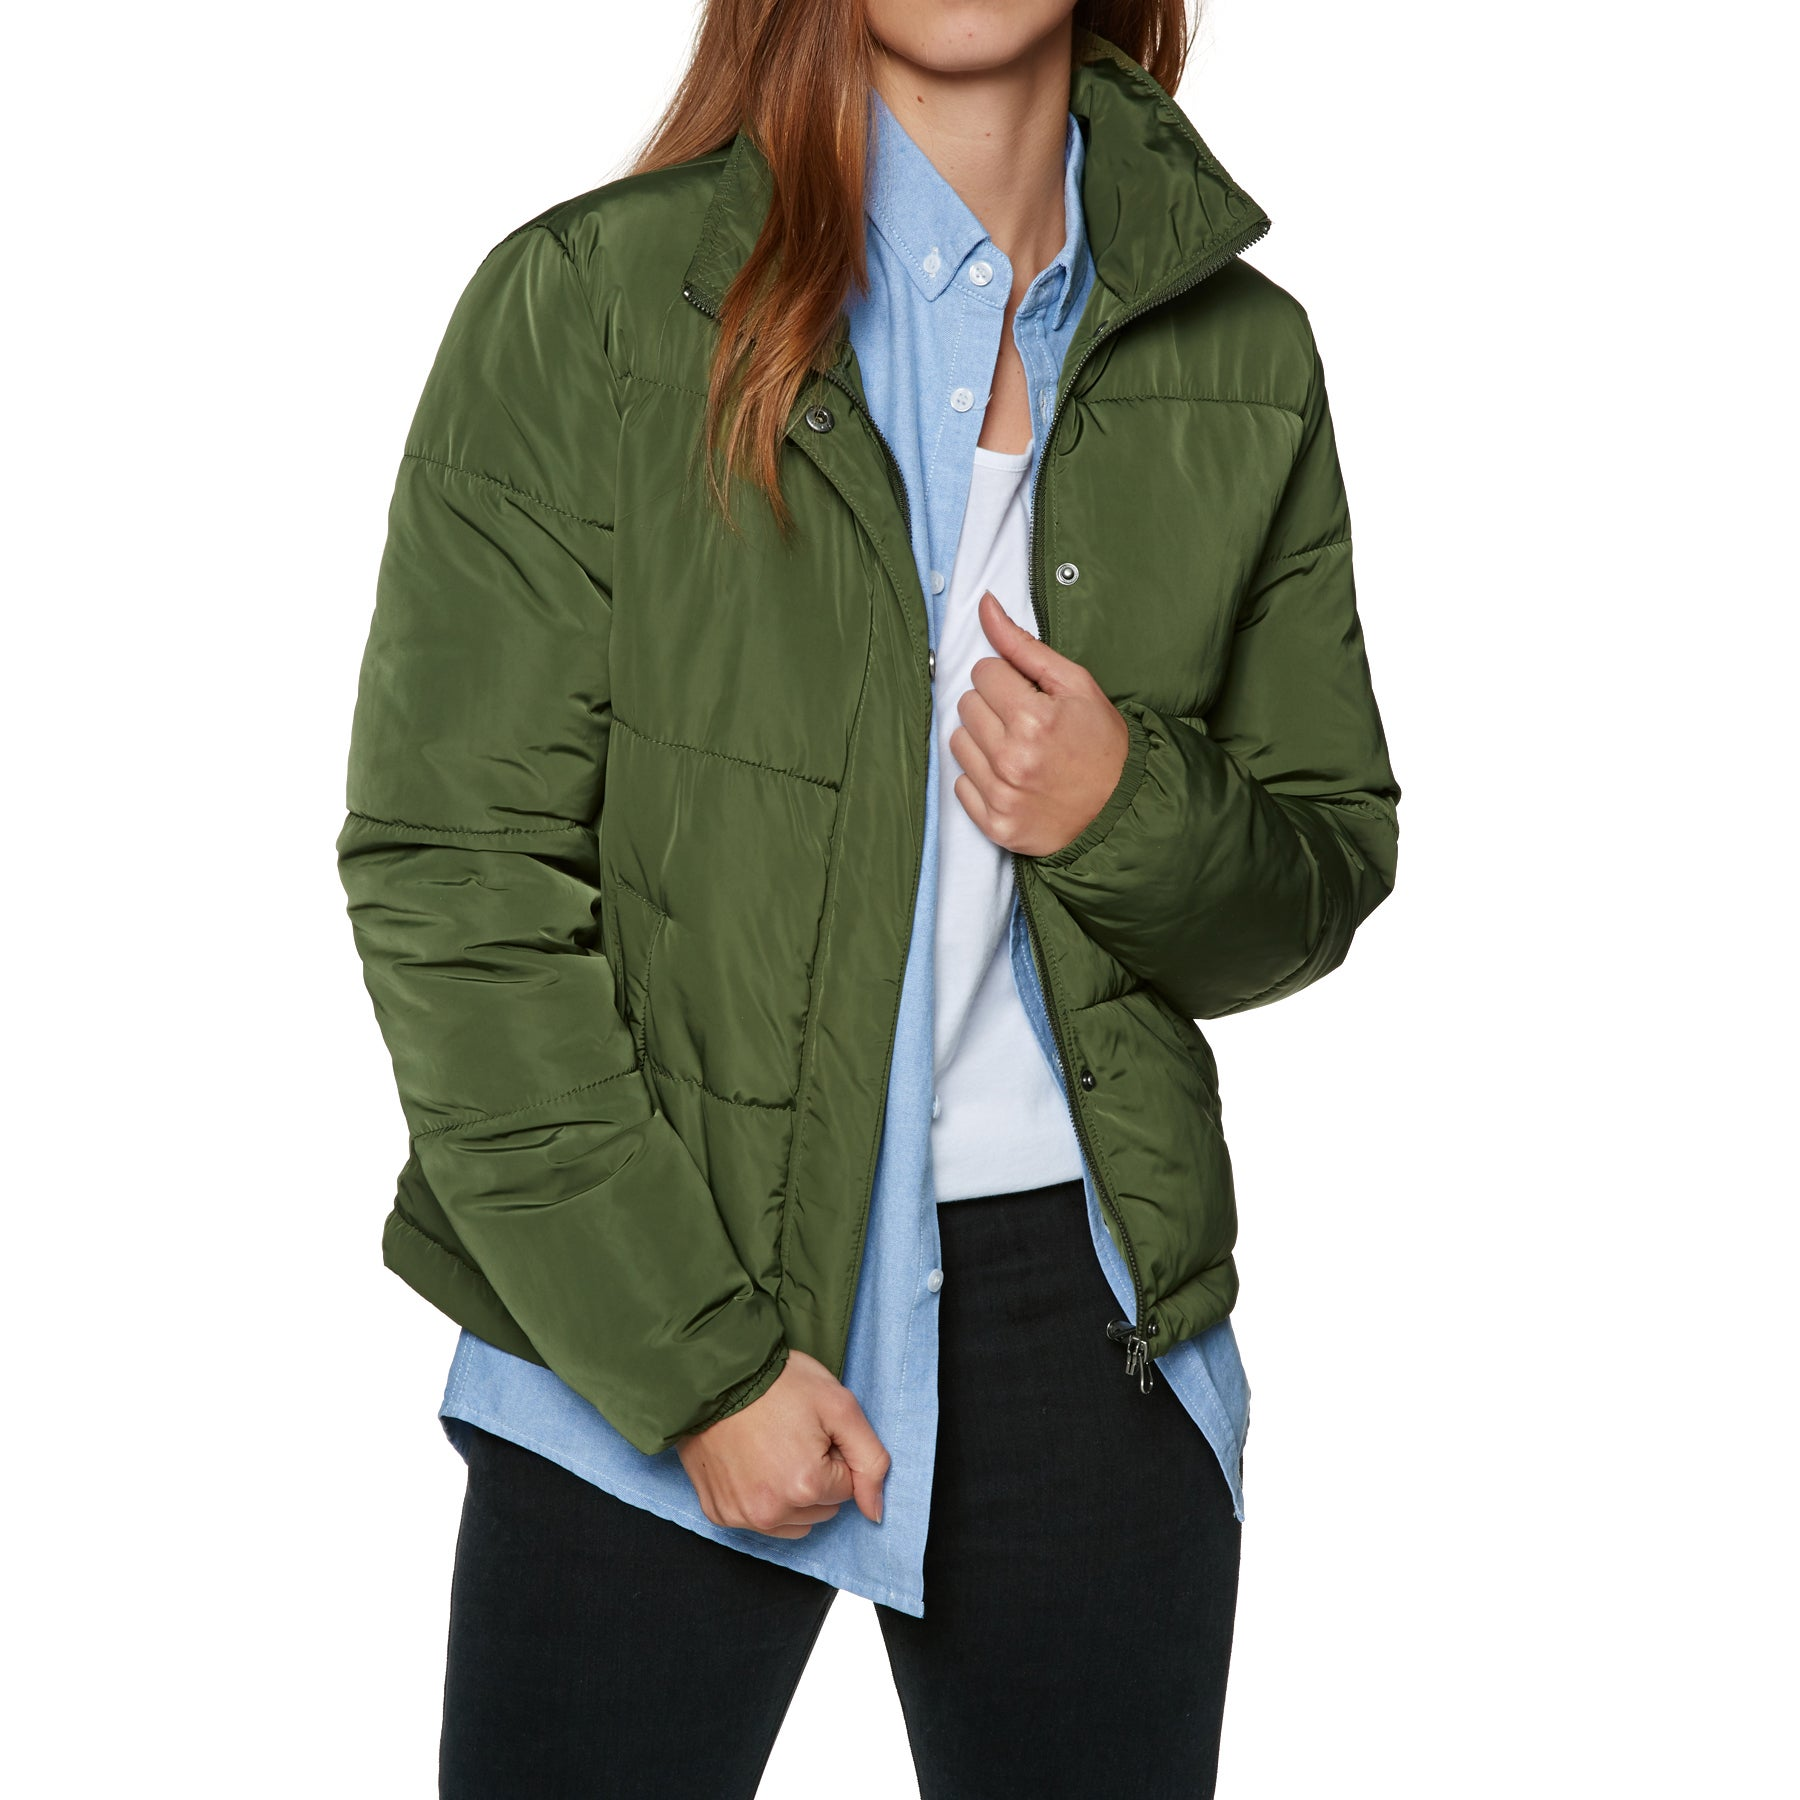 The Hidden Way Suvi Puffa Ladies Jacket